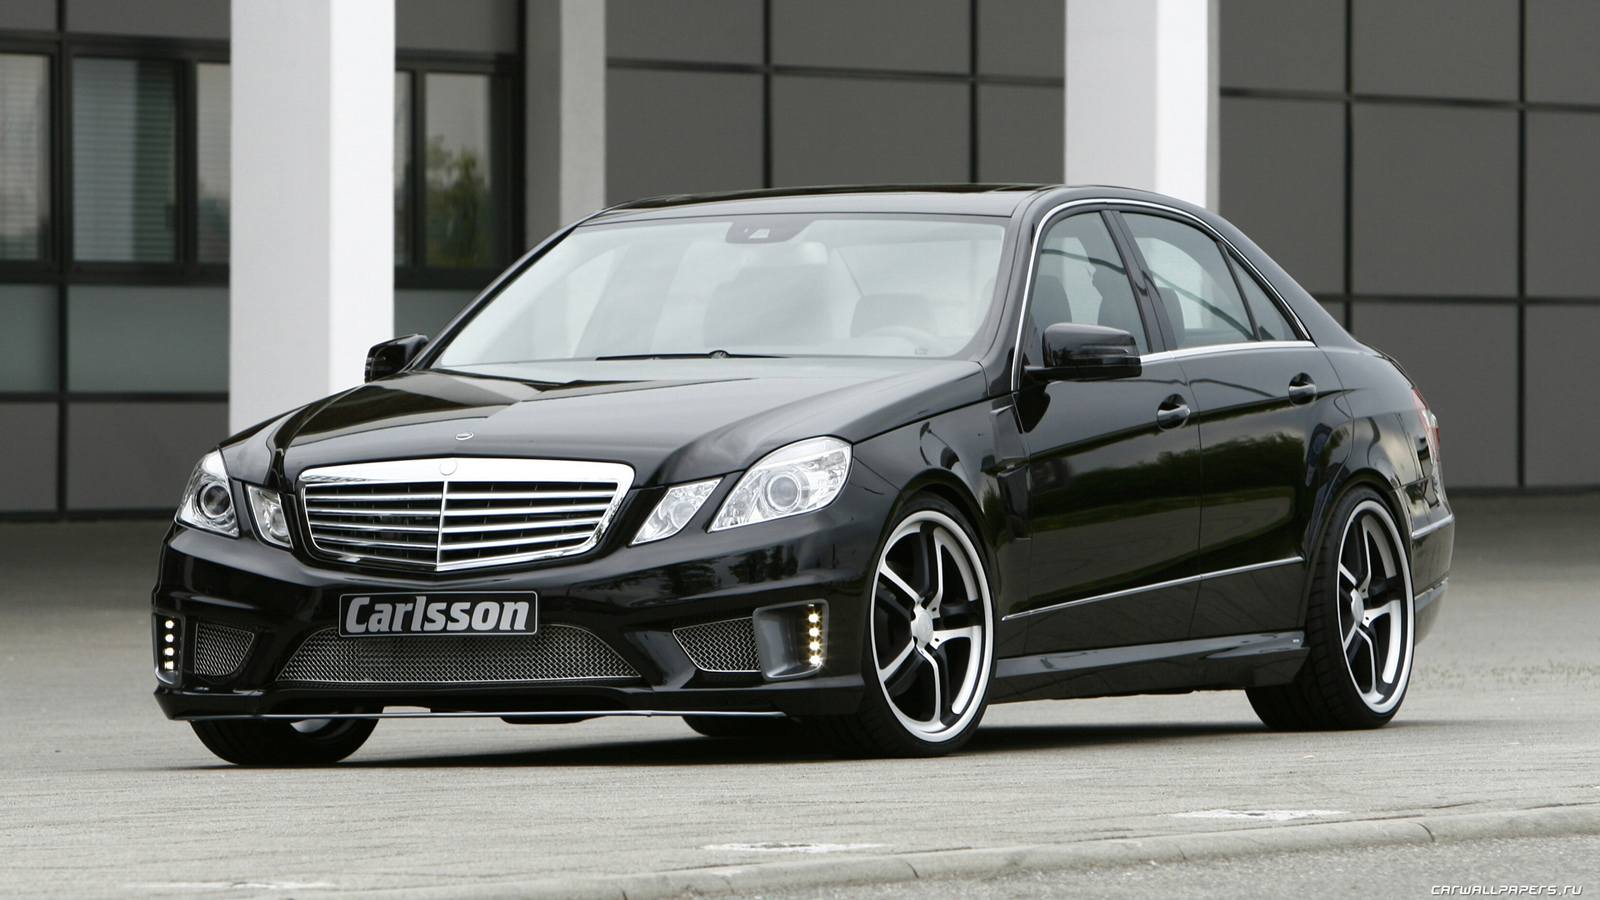 Mercedes benz e class cars specifications technical data for Mercedes benz e class 2009